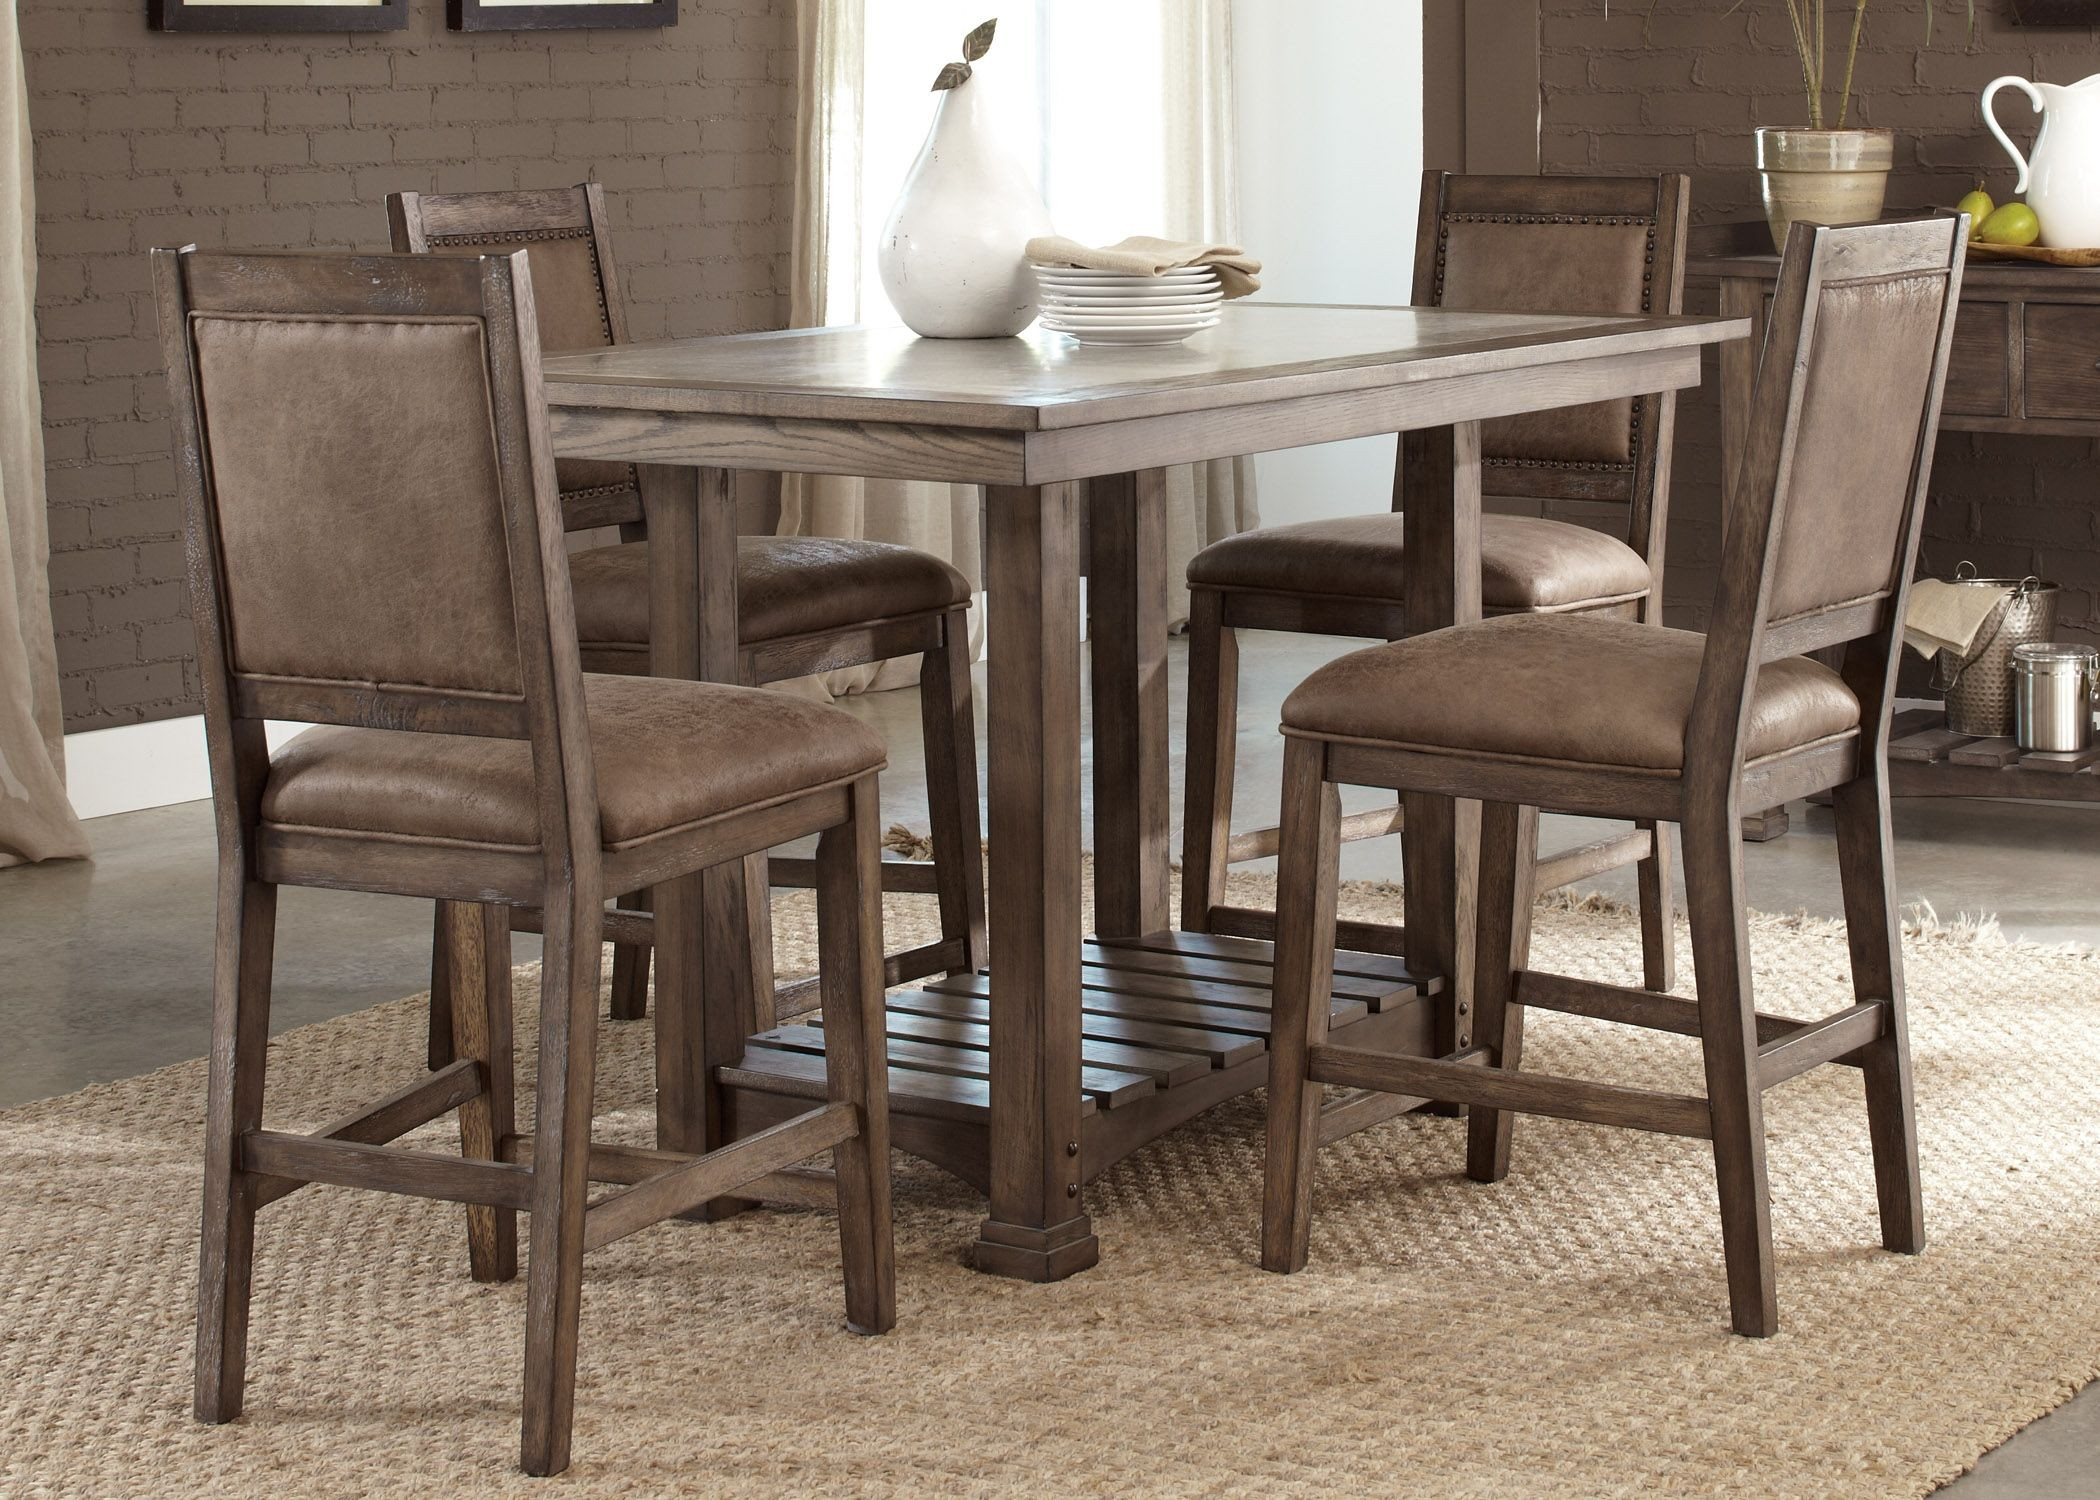 stone brook kitchen island dining room set from liberty kitchen island 5 pcs dining set table and 4 stools